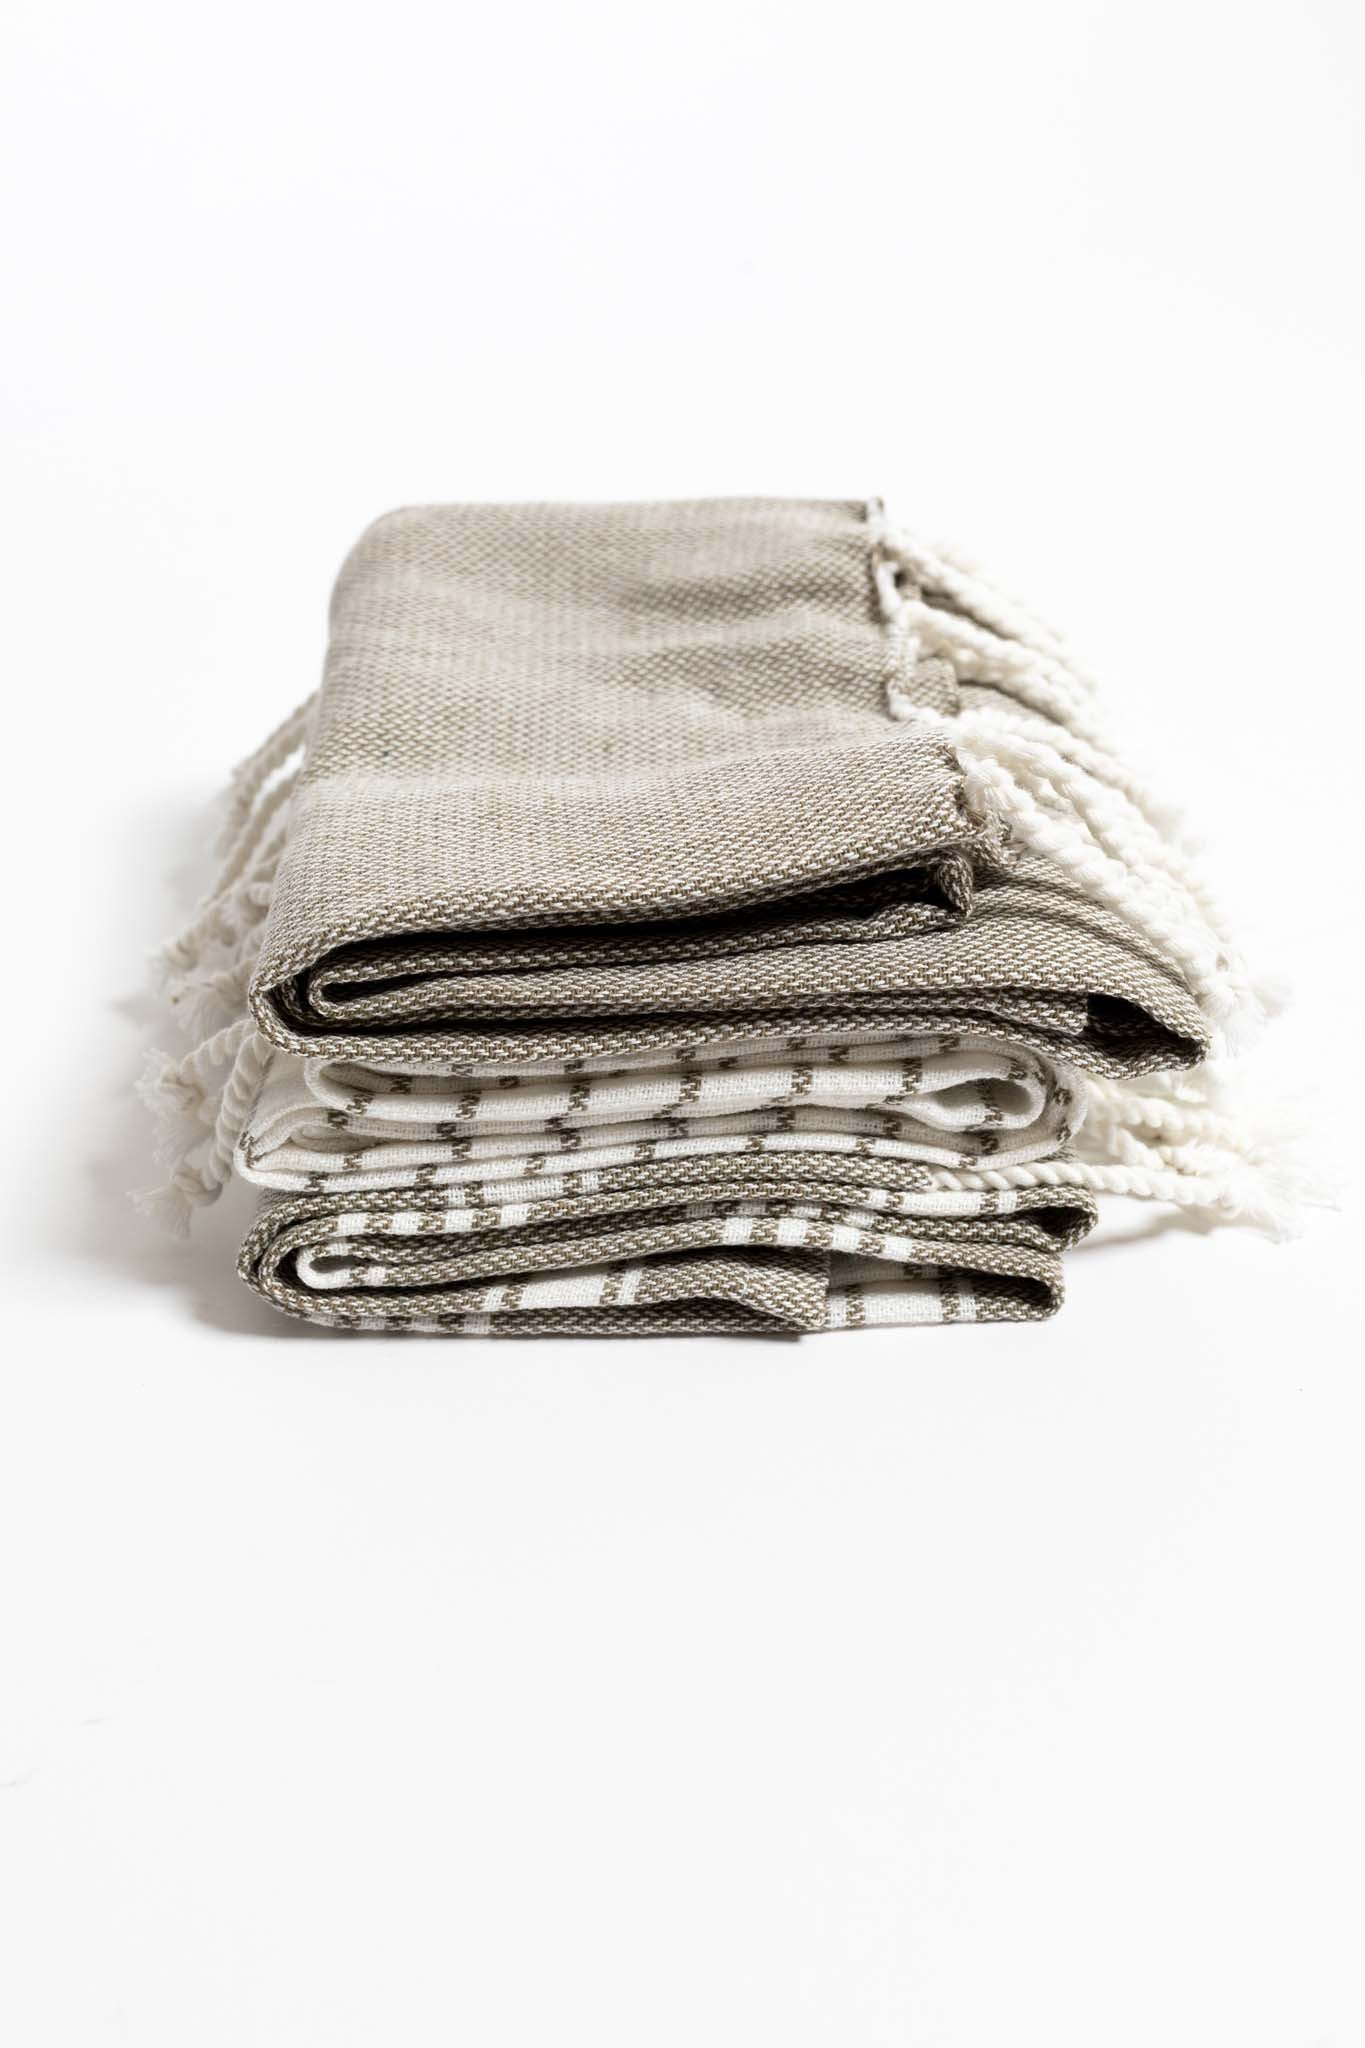 Koba Woven Cotton Striped Tea Towel w Tassels - Grey + White